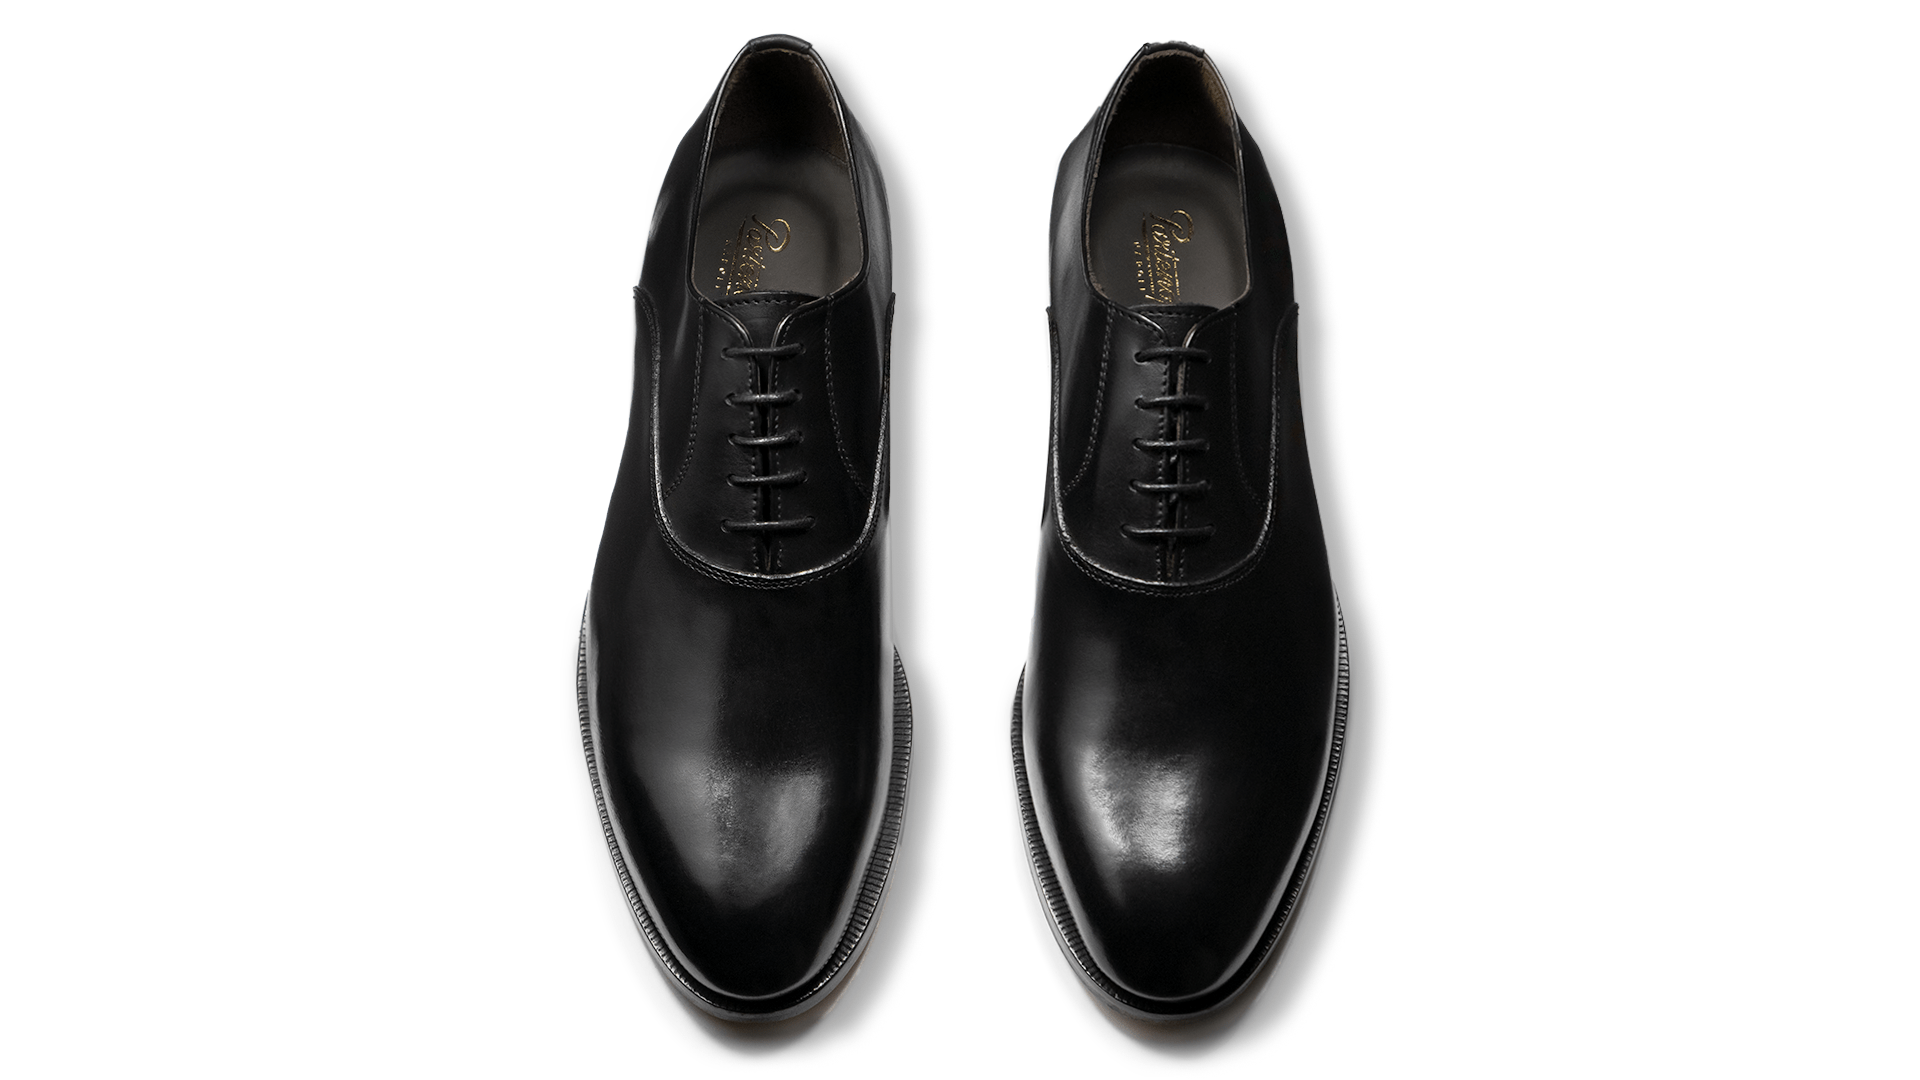 Oxford Plain Toe Crust Nero